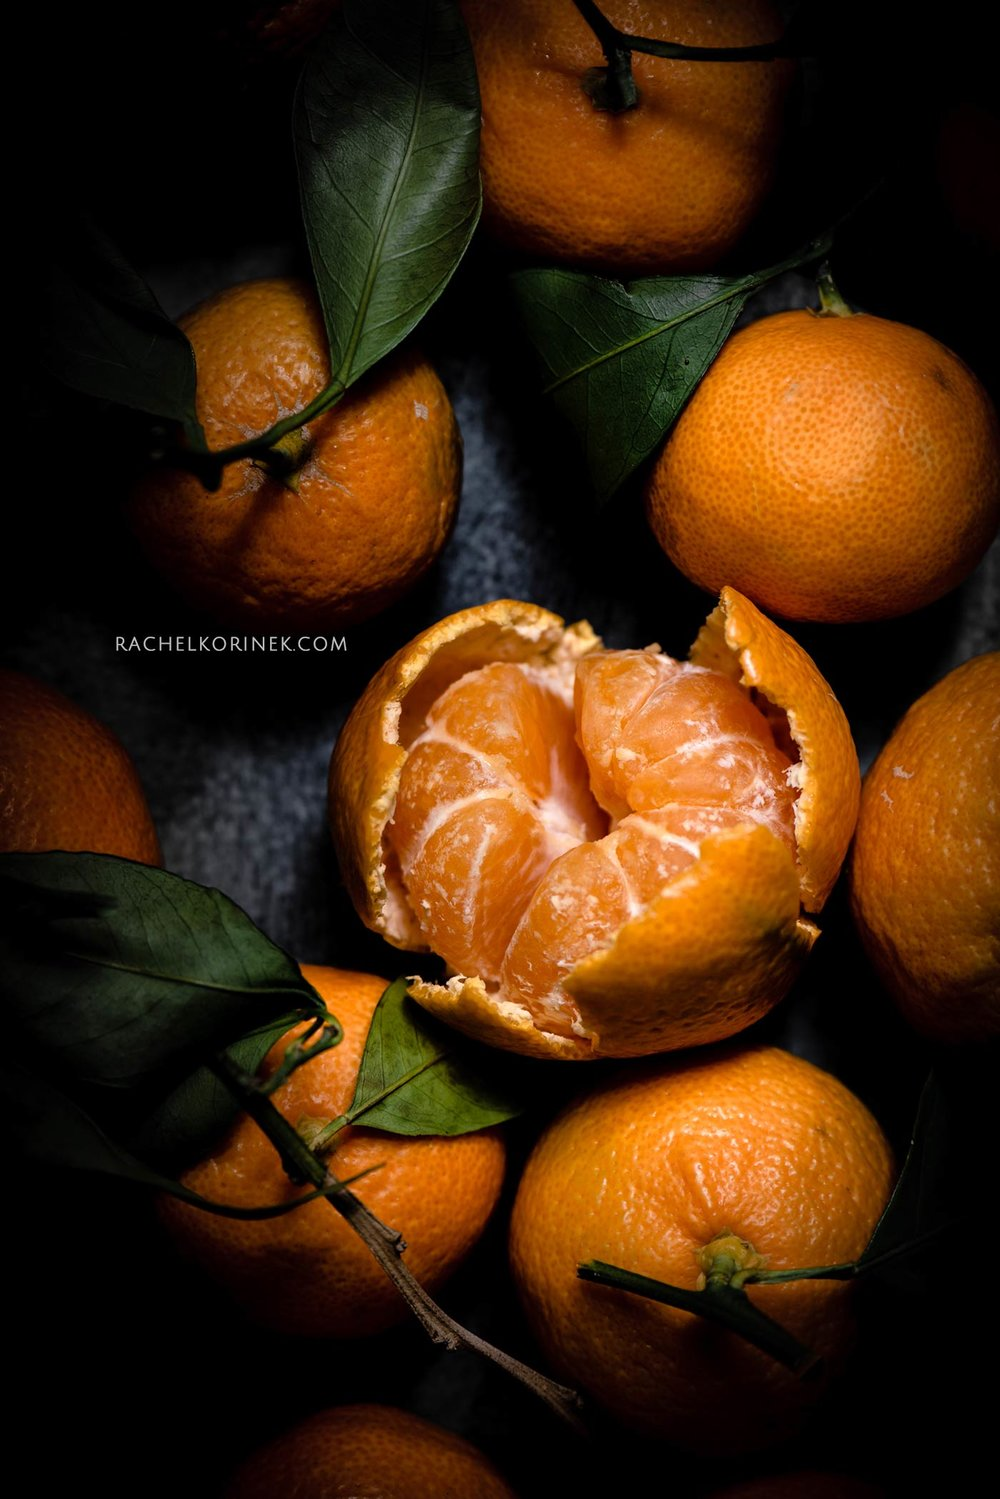 Rachel Korinek | Food Photographer Satsuma Still Life